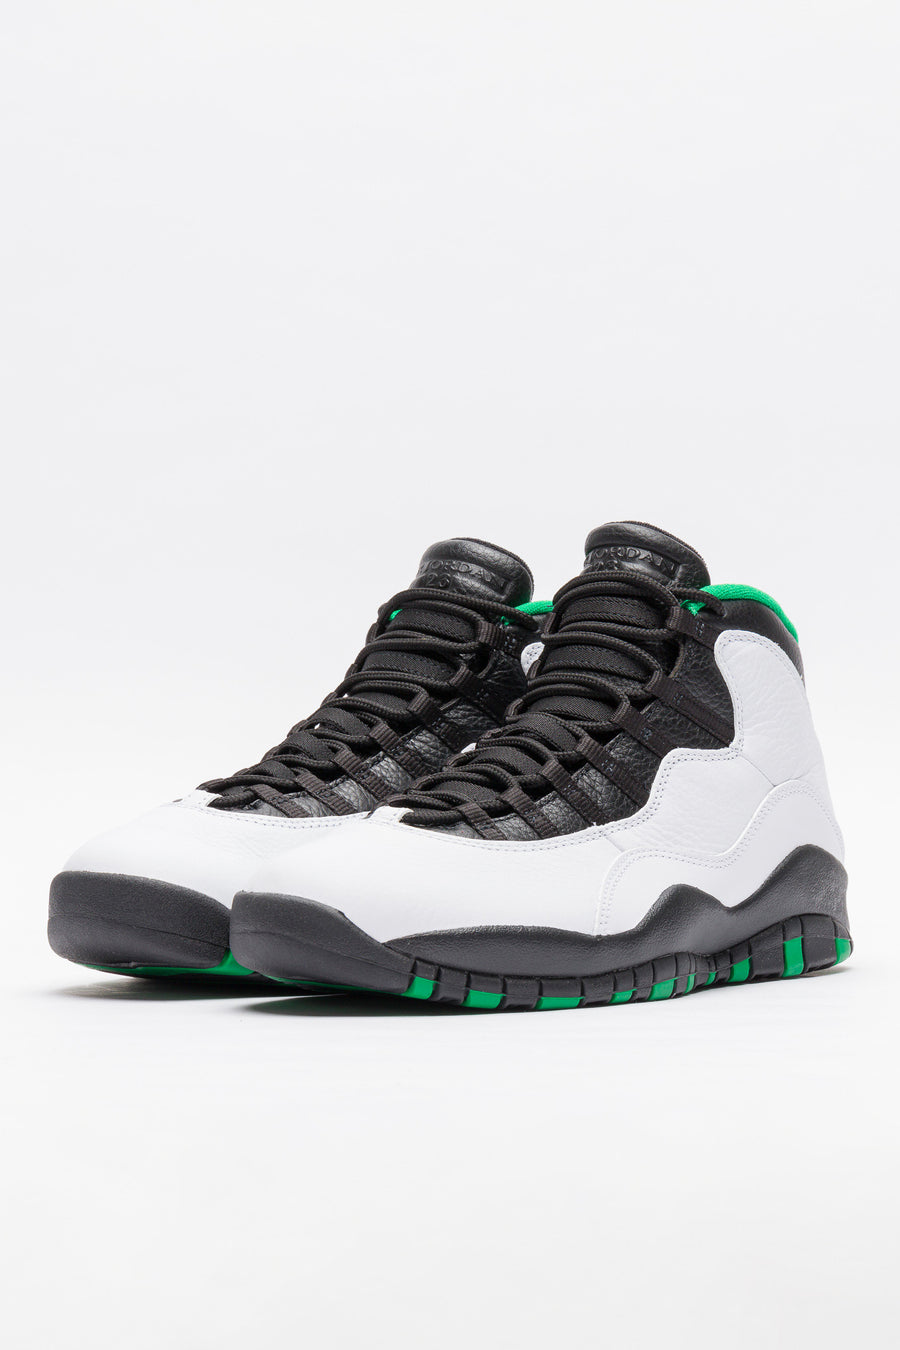 Jordan Air Jordan 10 Retro in White/Black/Green - Notre